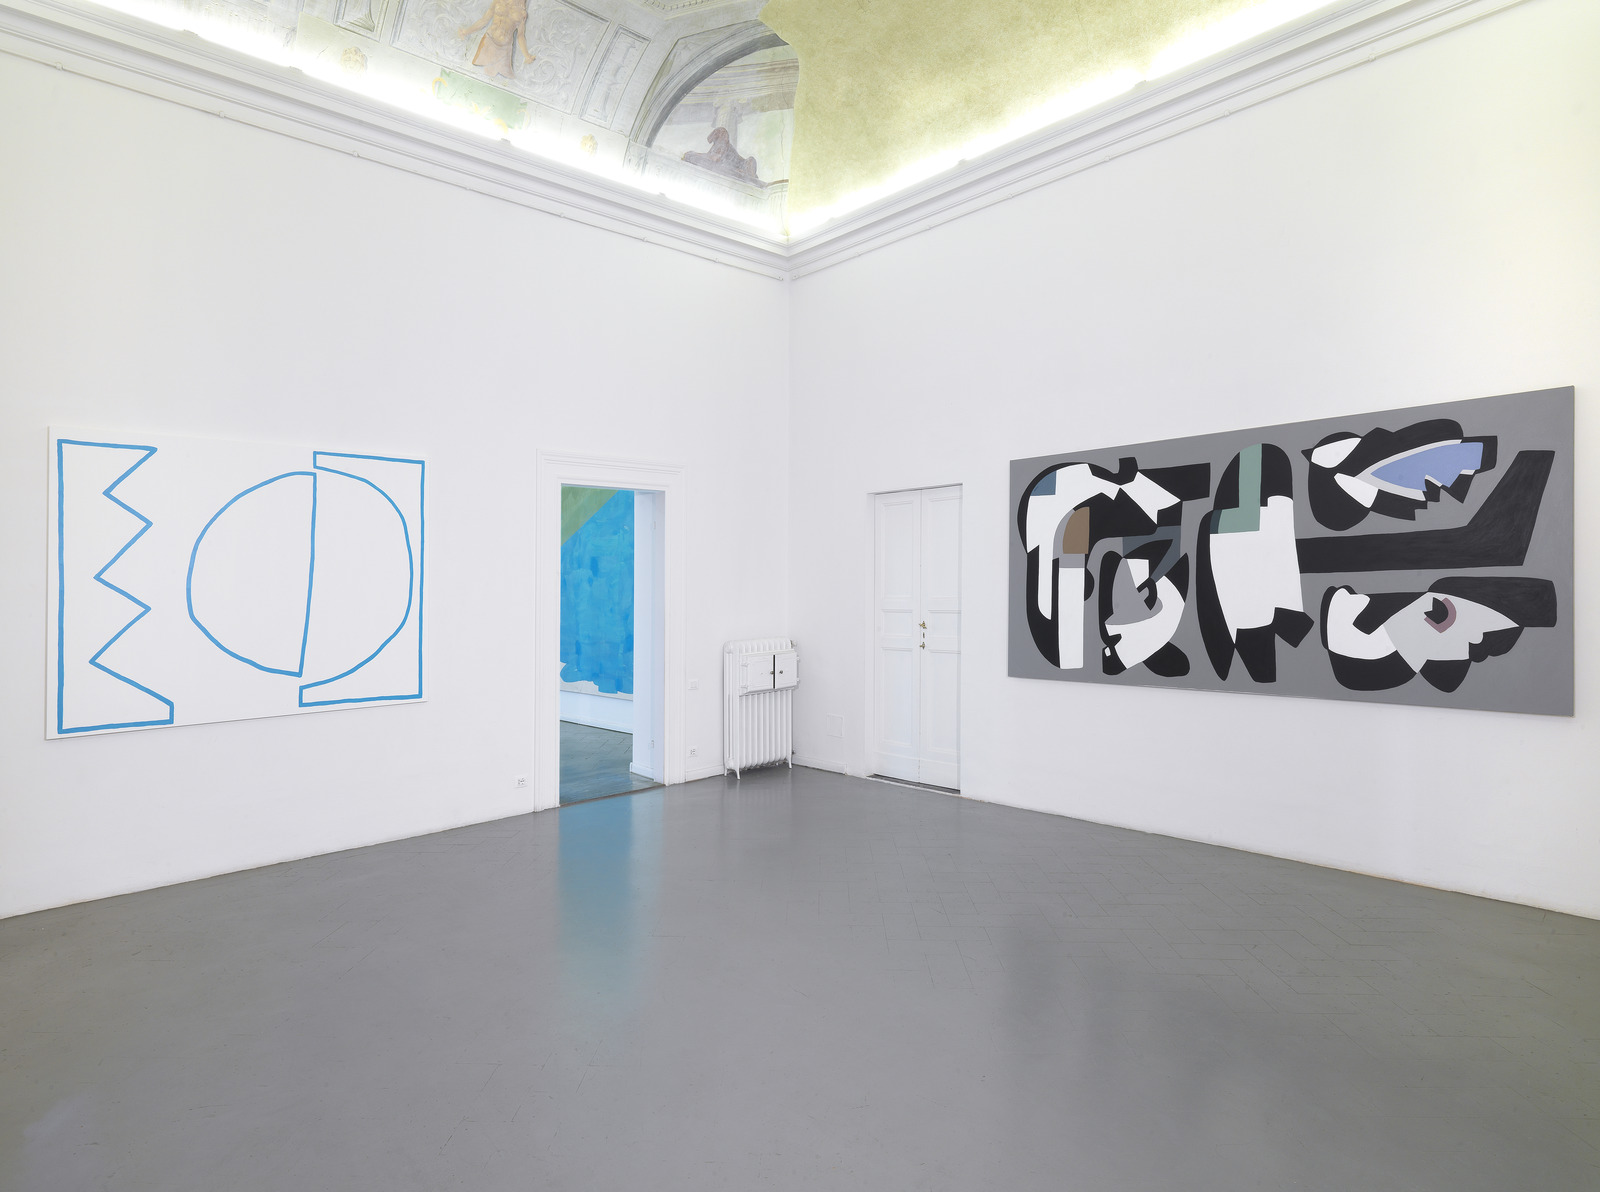 6.Installation View, Stephen Felton, Tamina Amadyar, Hayal Pozanti. Courtesy of Eduardo Secci Contemporary